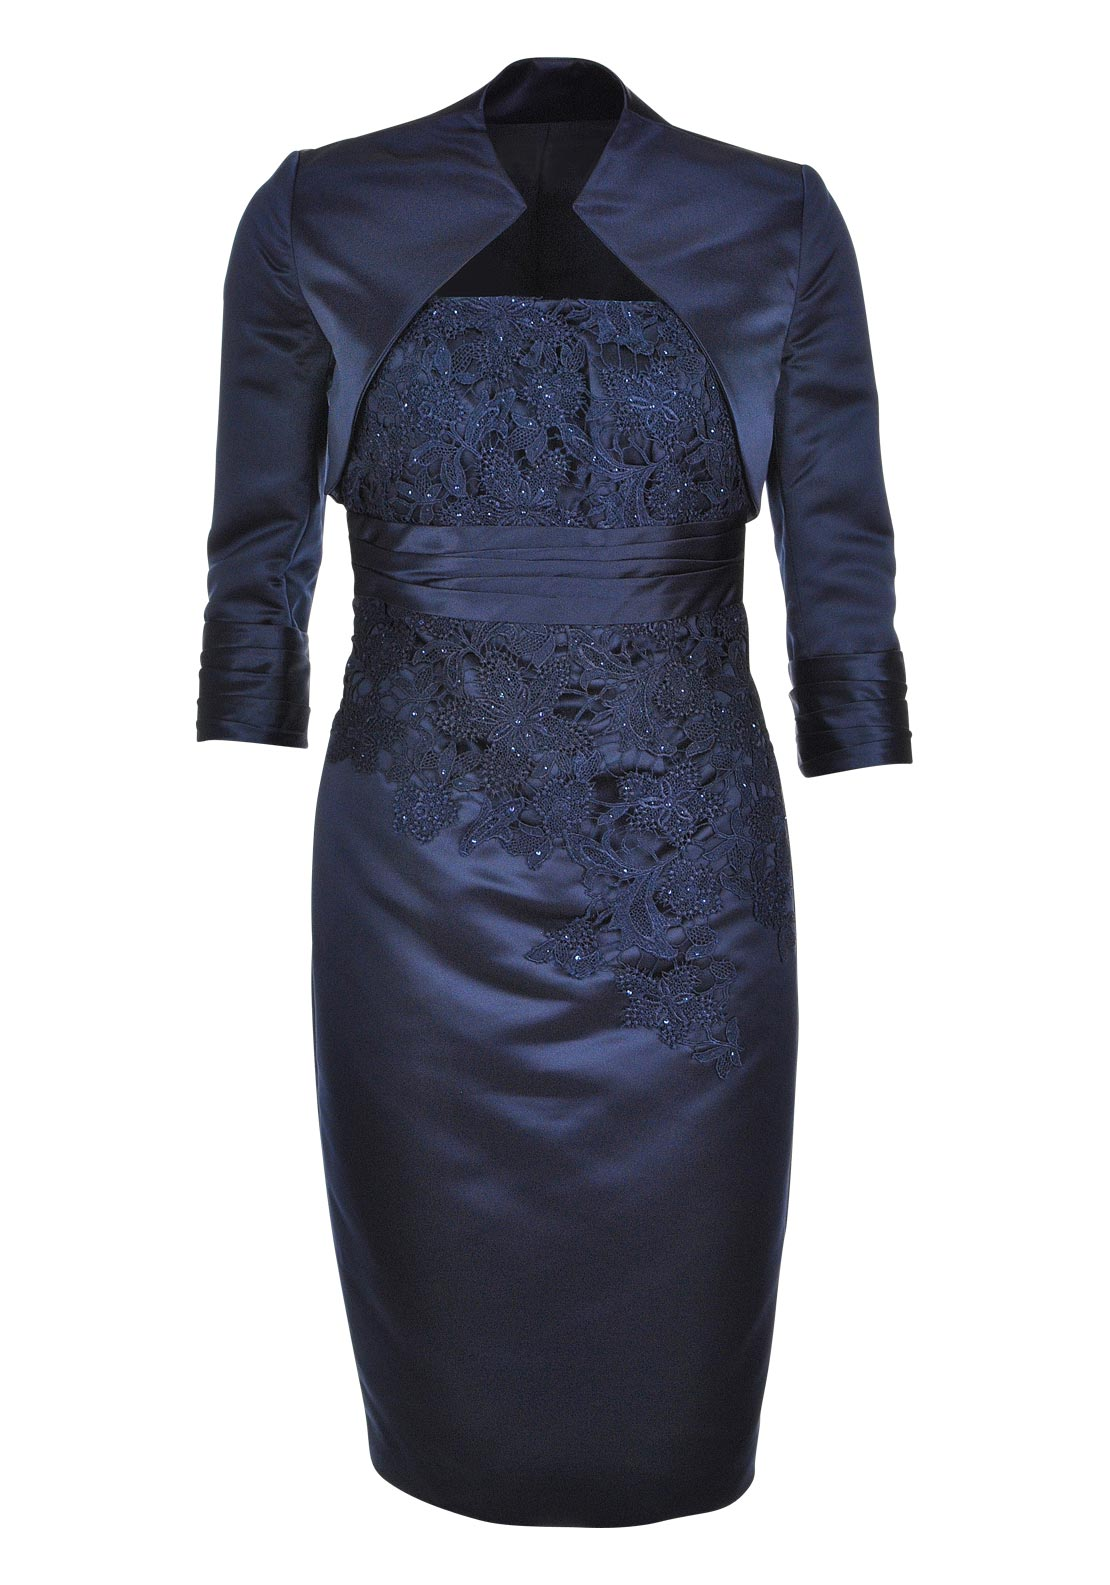 L'Atelier Occasion Wear Satin and Lace Dress and Bolero Jacket, Navy